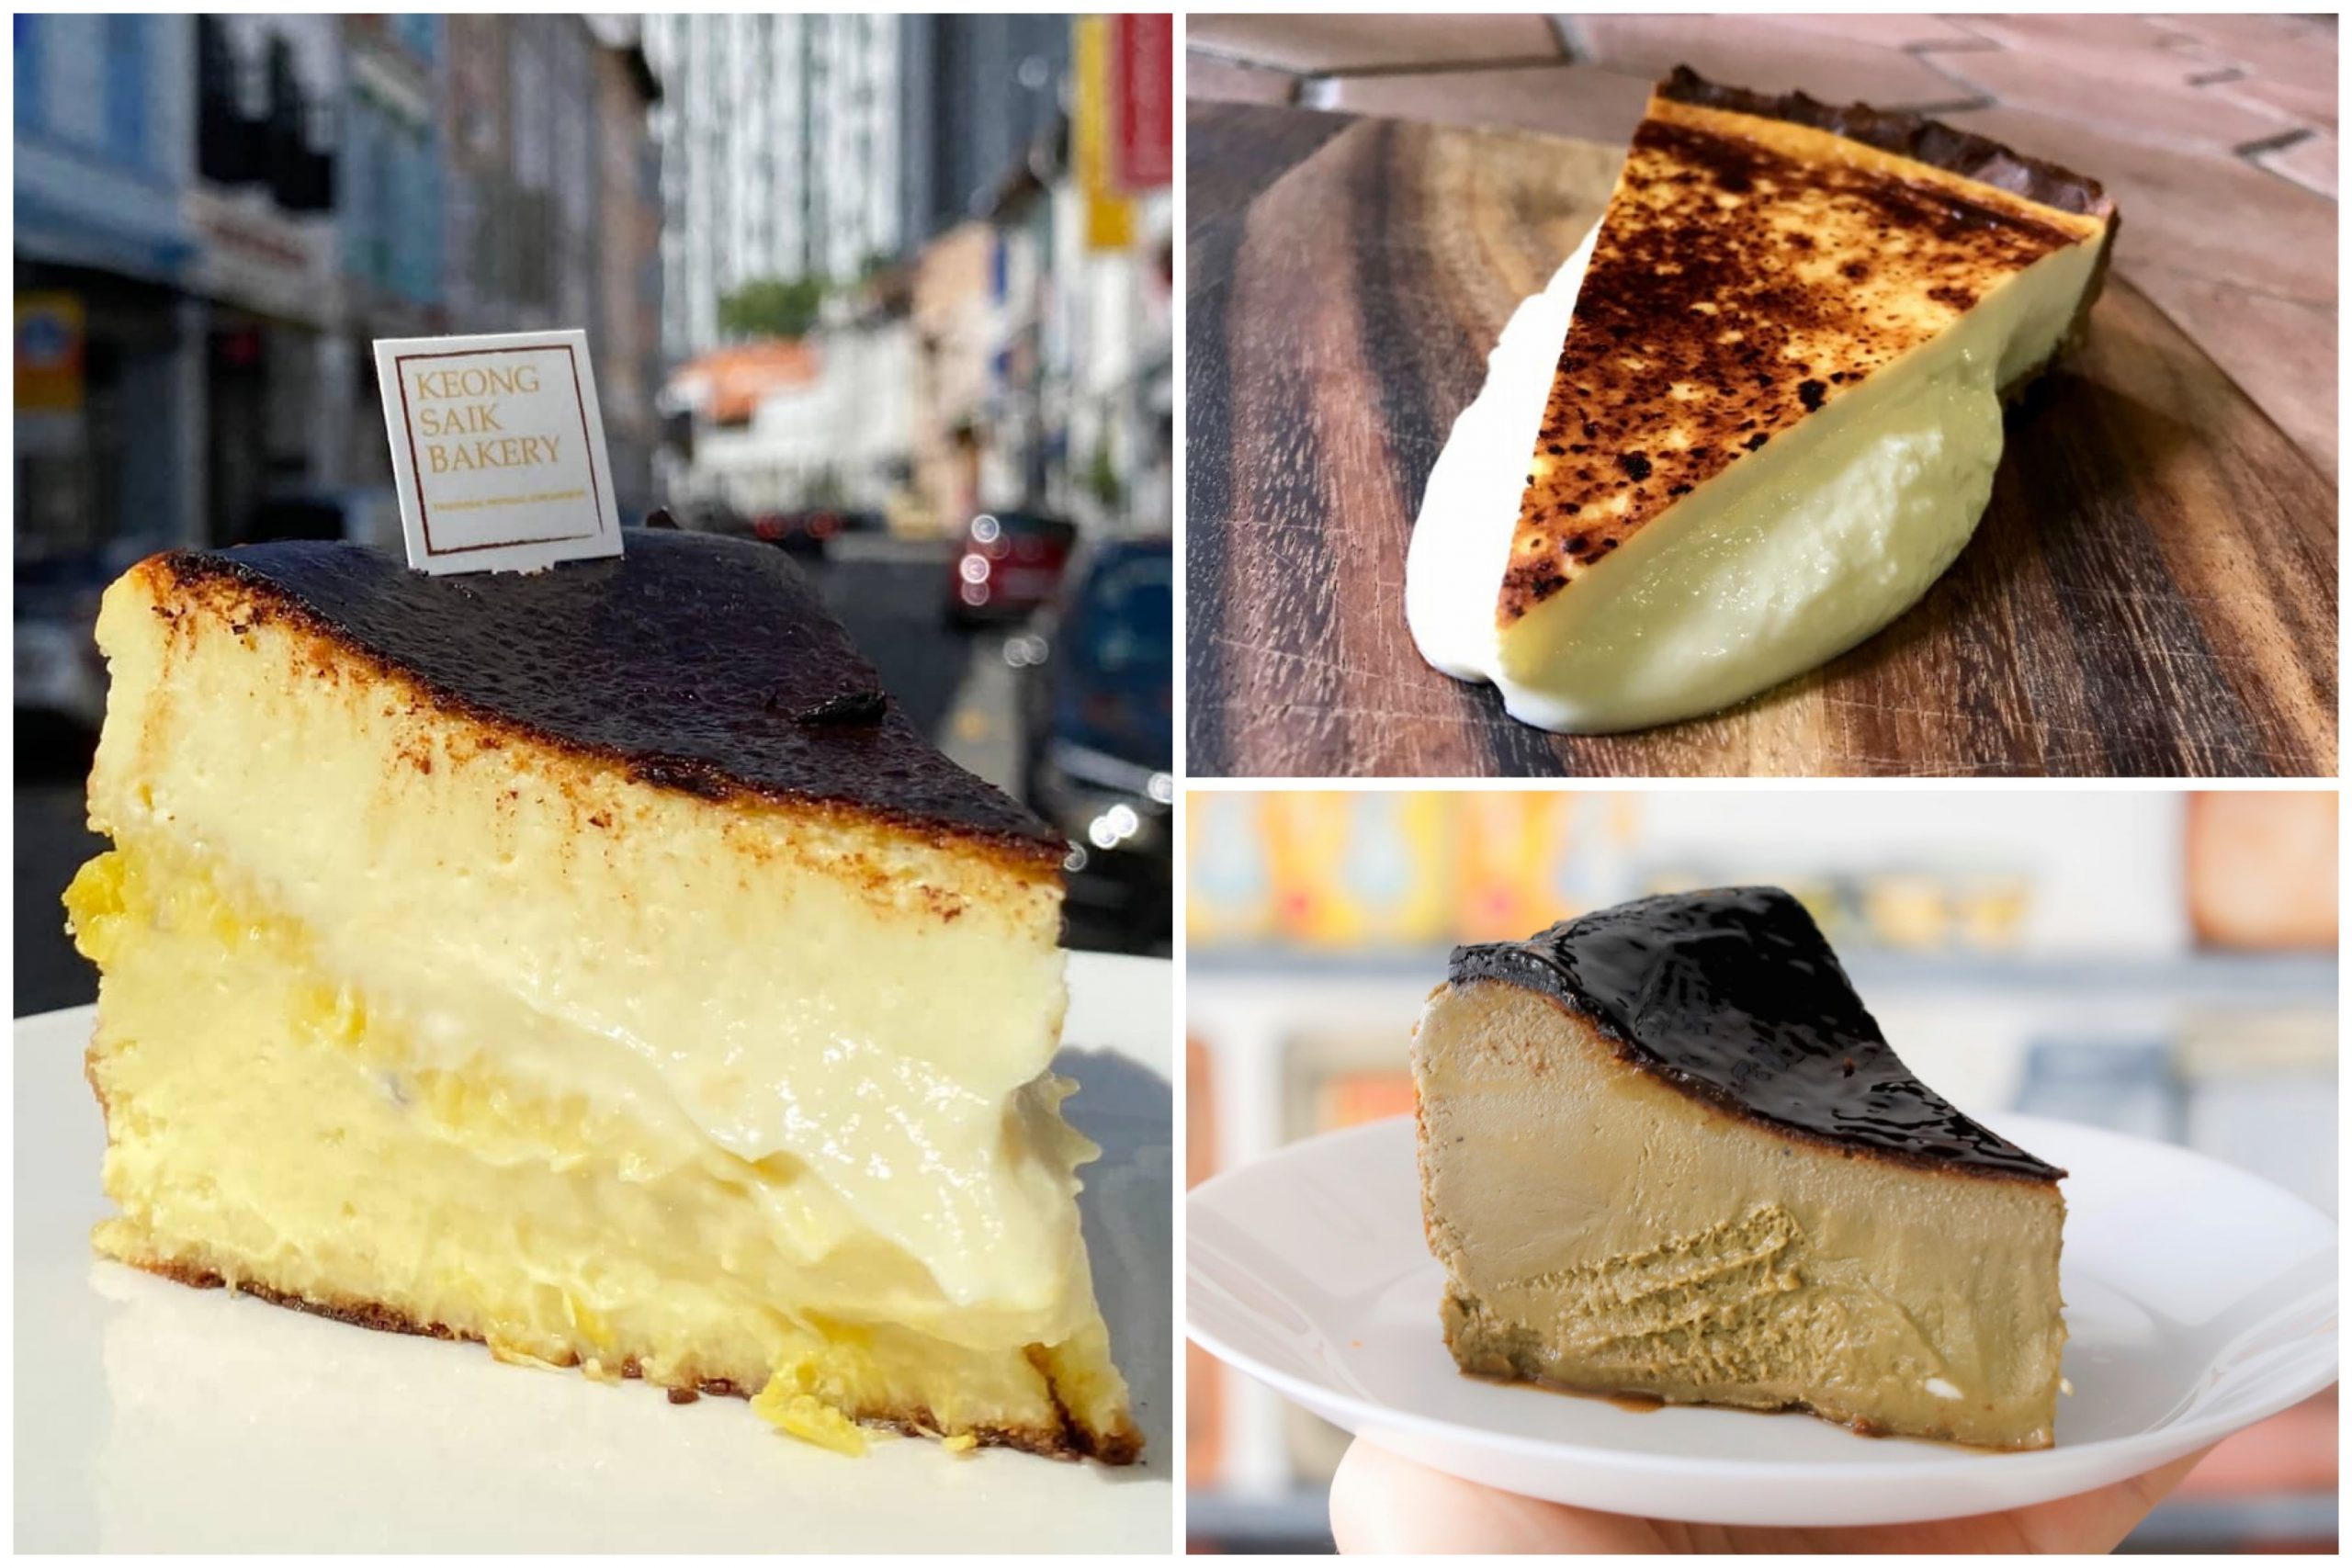 10 Basque Burnt Cheesecake In Singapore Including Mao Shan Wang Matcha And Hojicha Burnt Cheesecake Danielfooddiary Com